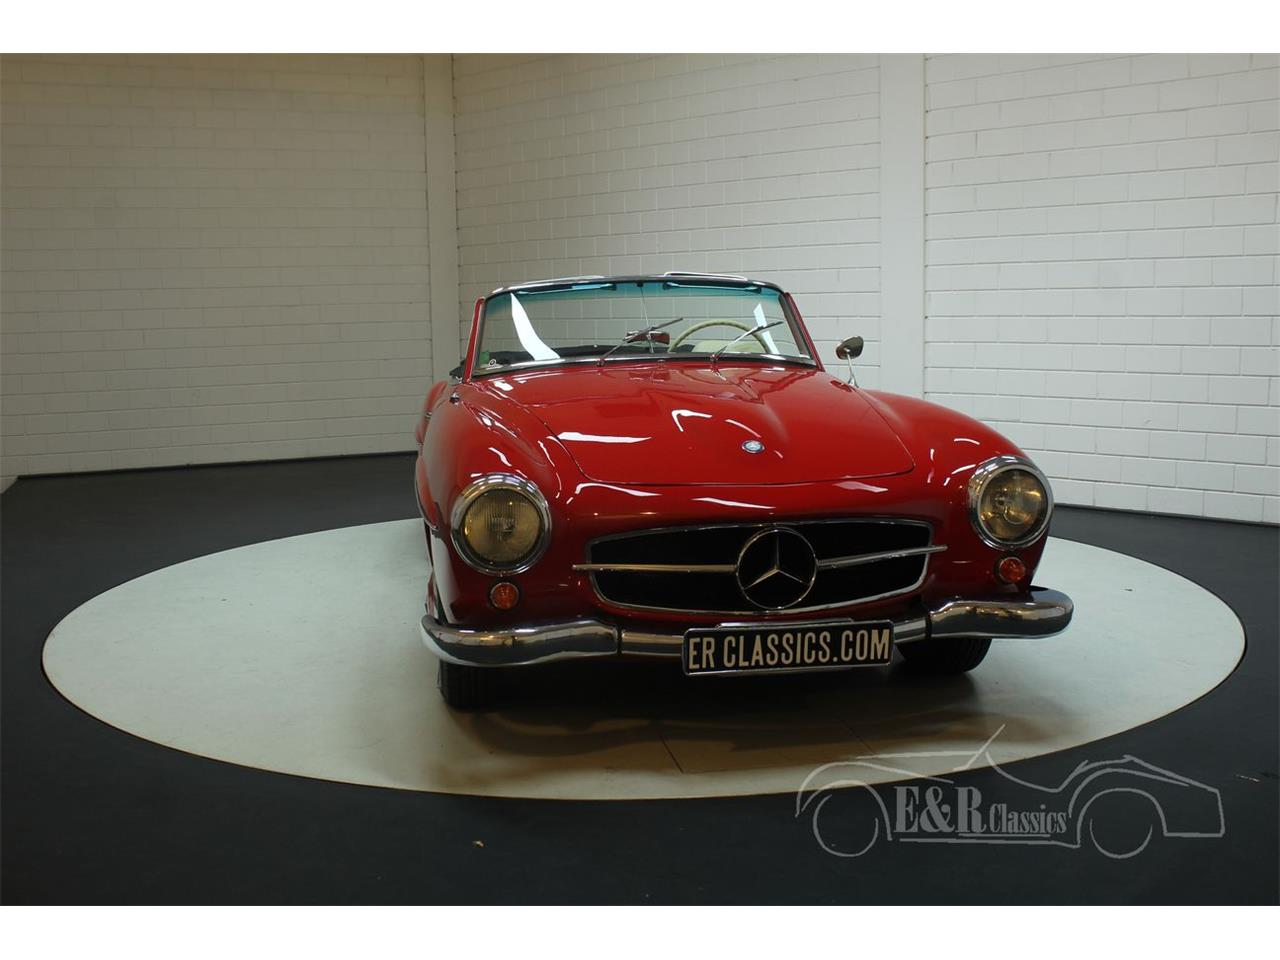 Large Picture of '56 Mercedes-Benz 190SL located in - Keine Angabe - - $118,450.00 Offered by E & R Classics - PH44